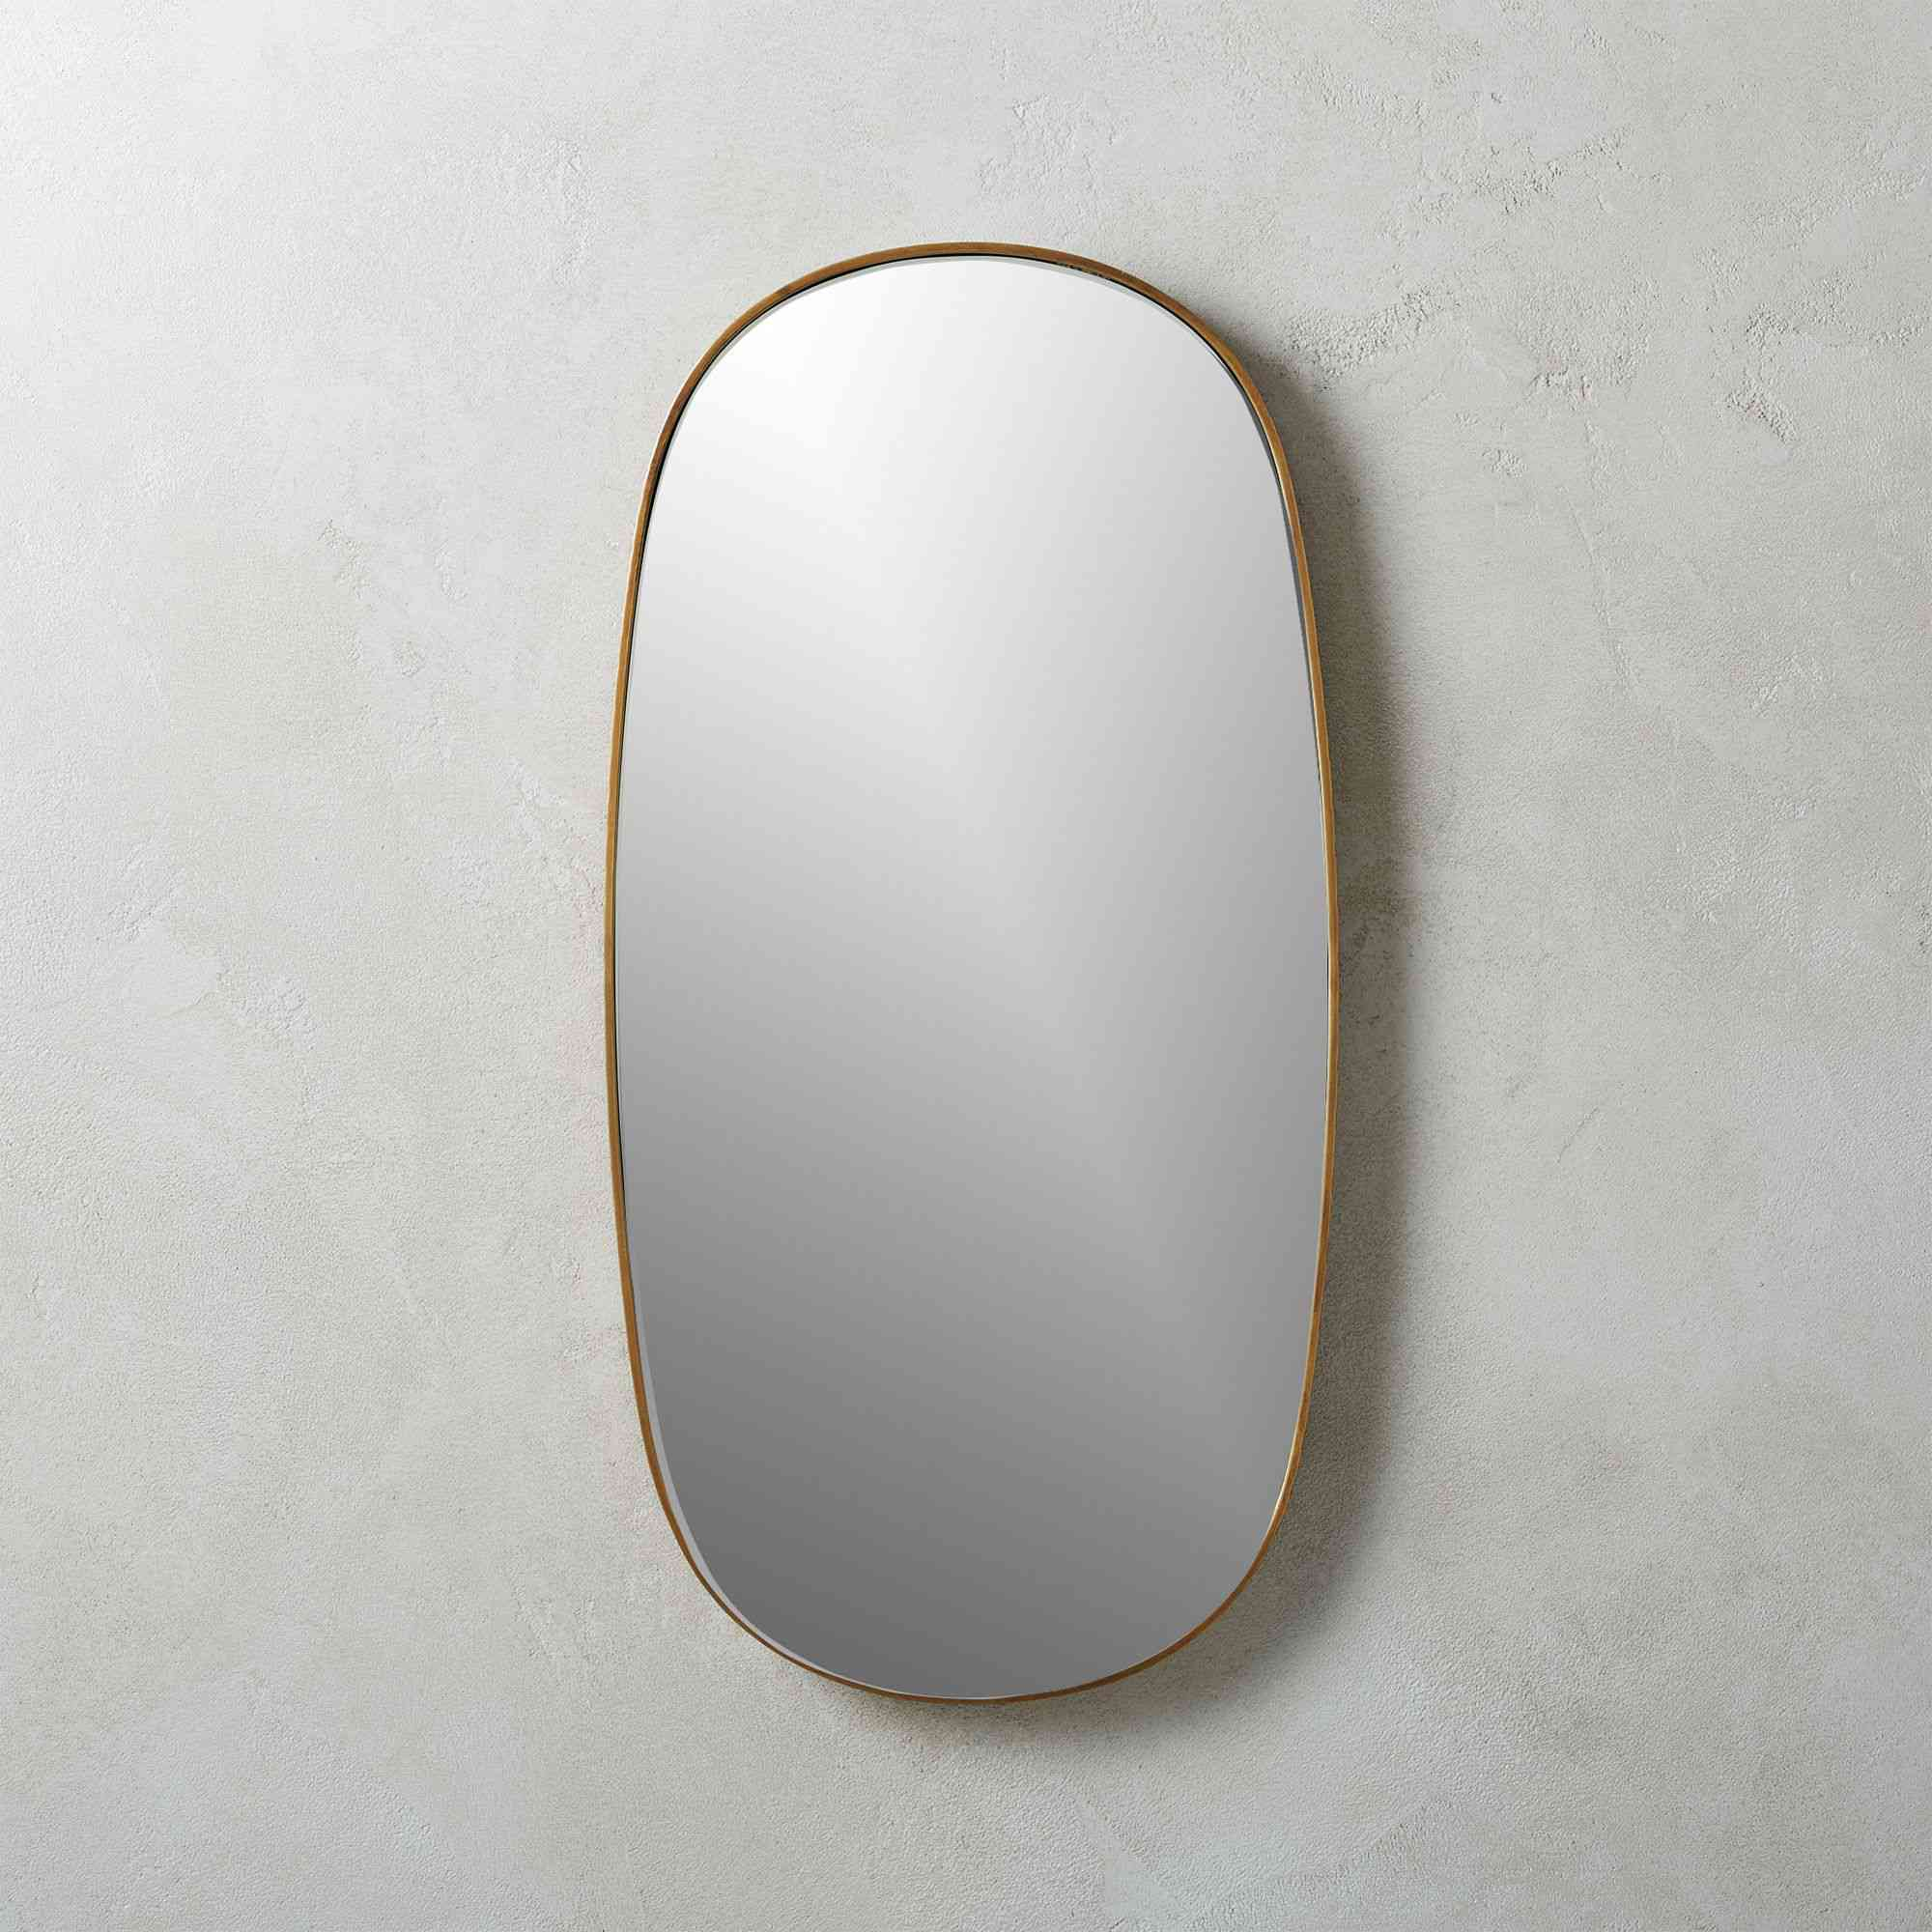 A CB2 oval mirror with an iron frame finished in antique-brass.